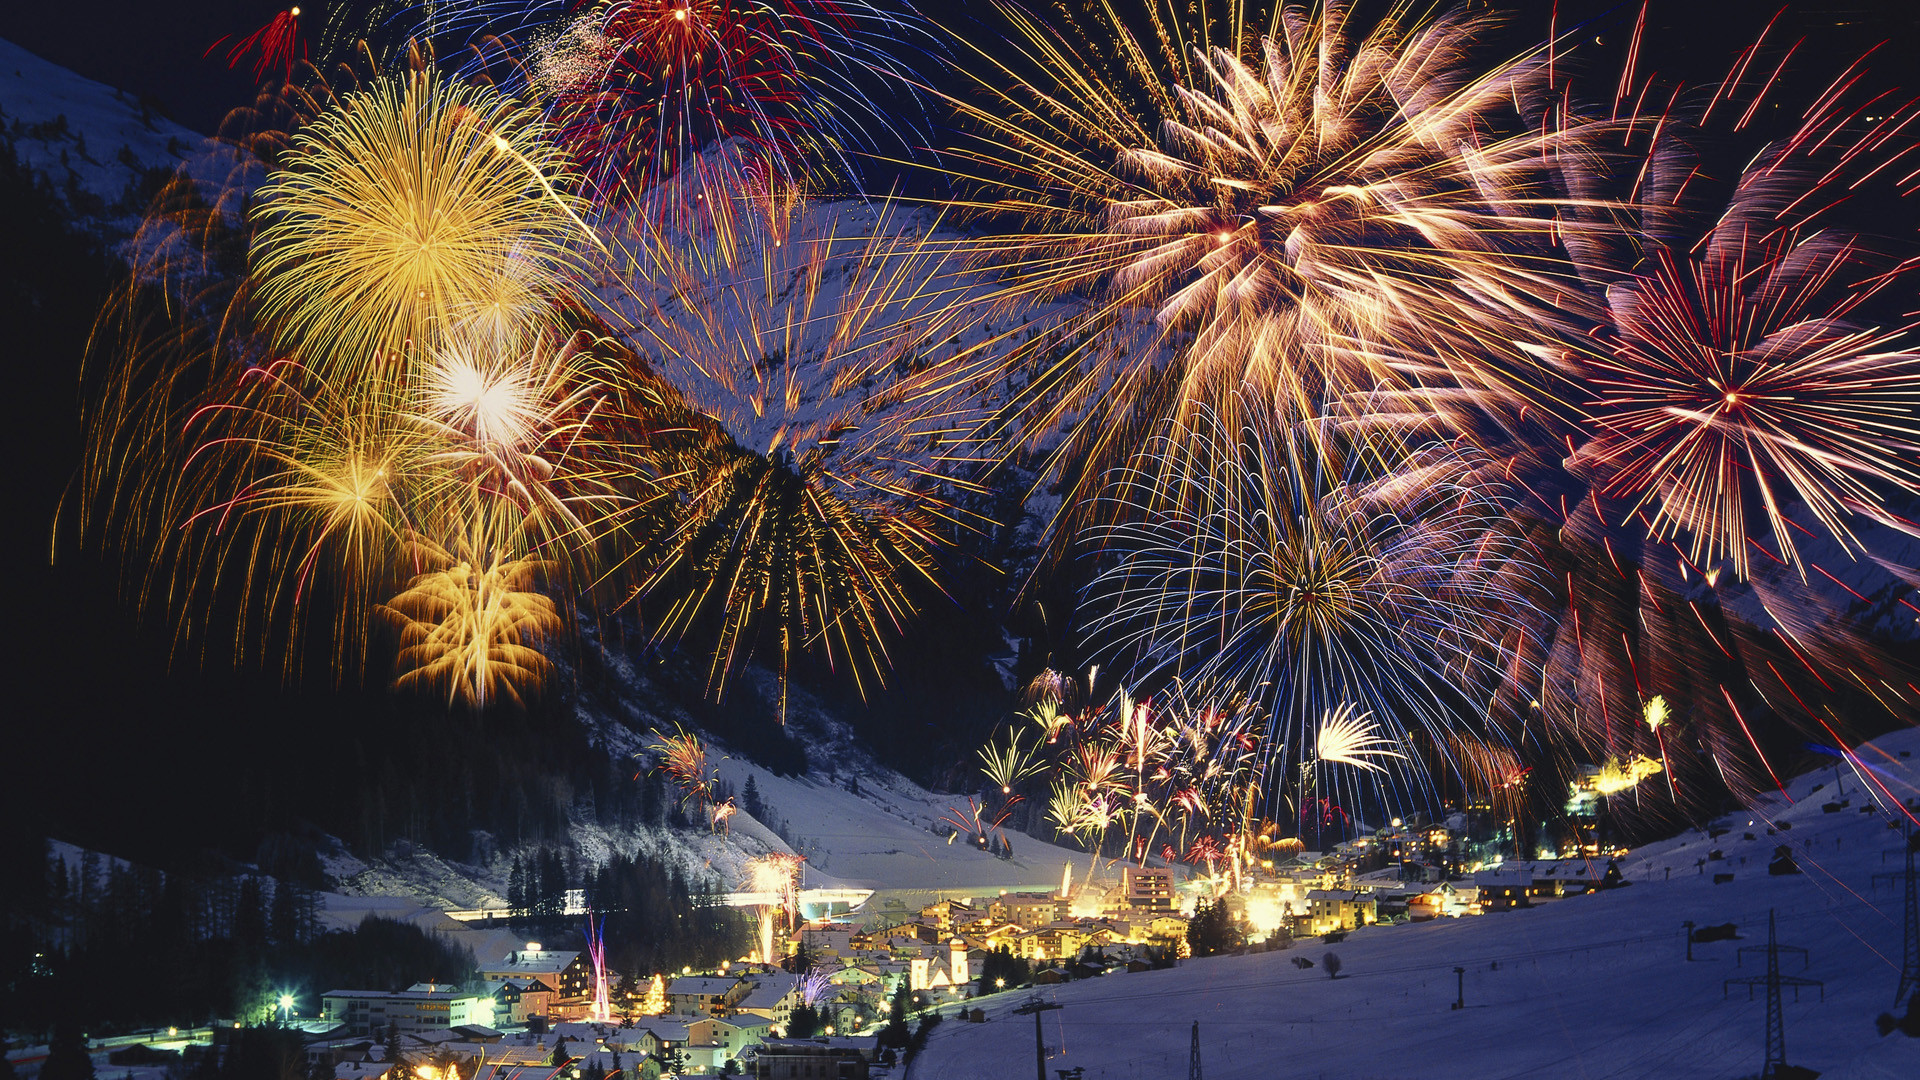 1920x1080 snow-scenery-wallpaper-festival-fireworks-free-download-free.